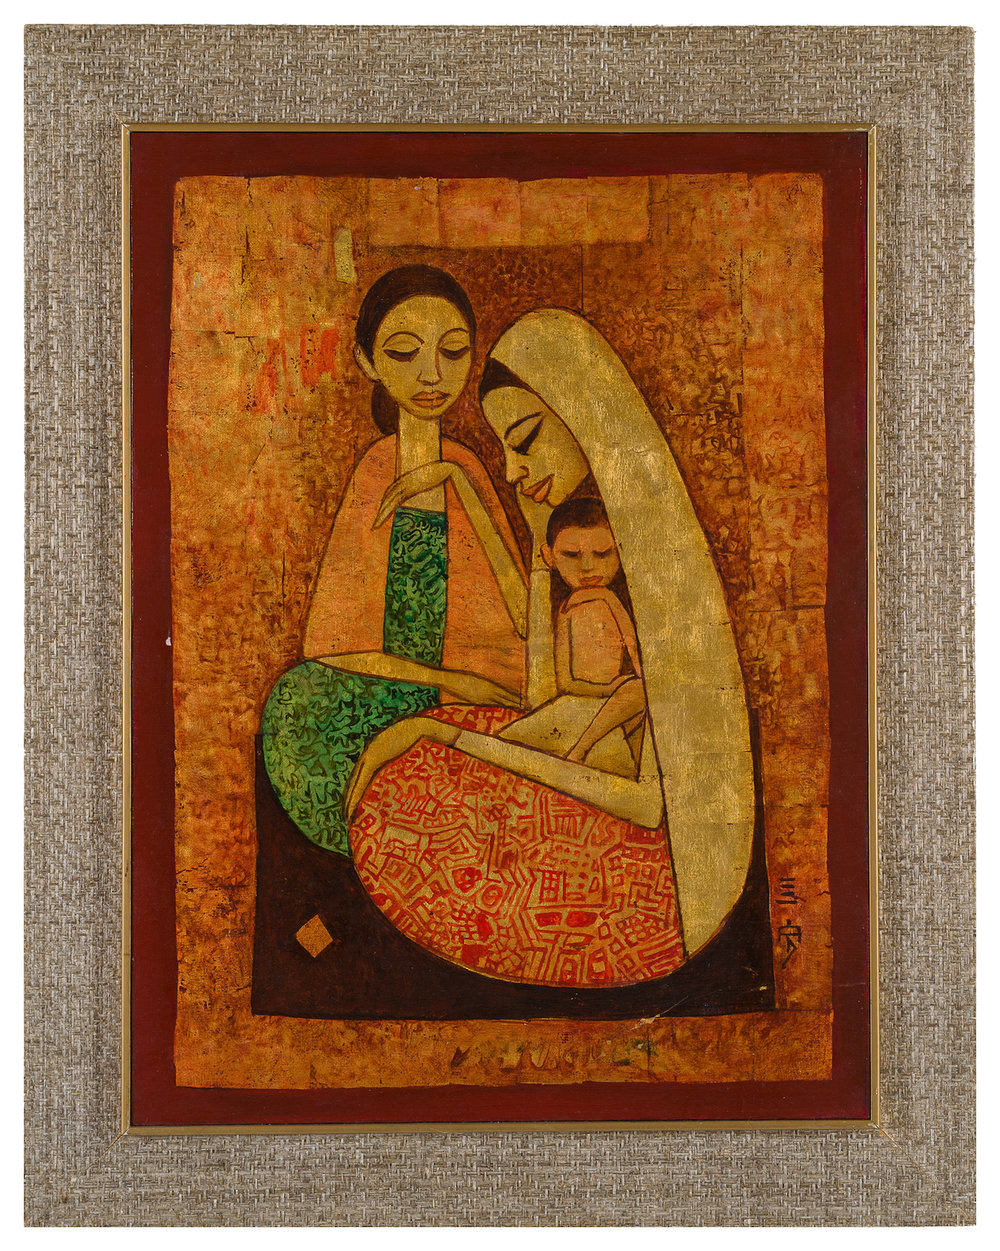 Cheong Soo Pieng, 'Two Ladies and a Child', 1974, oil on canvas, 60 x 45cm. Image courtesy of 33 Auction.